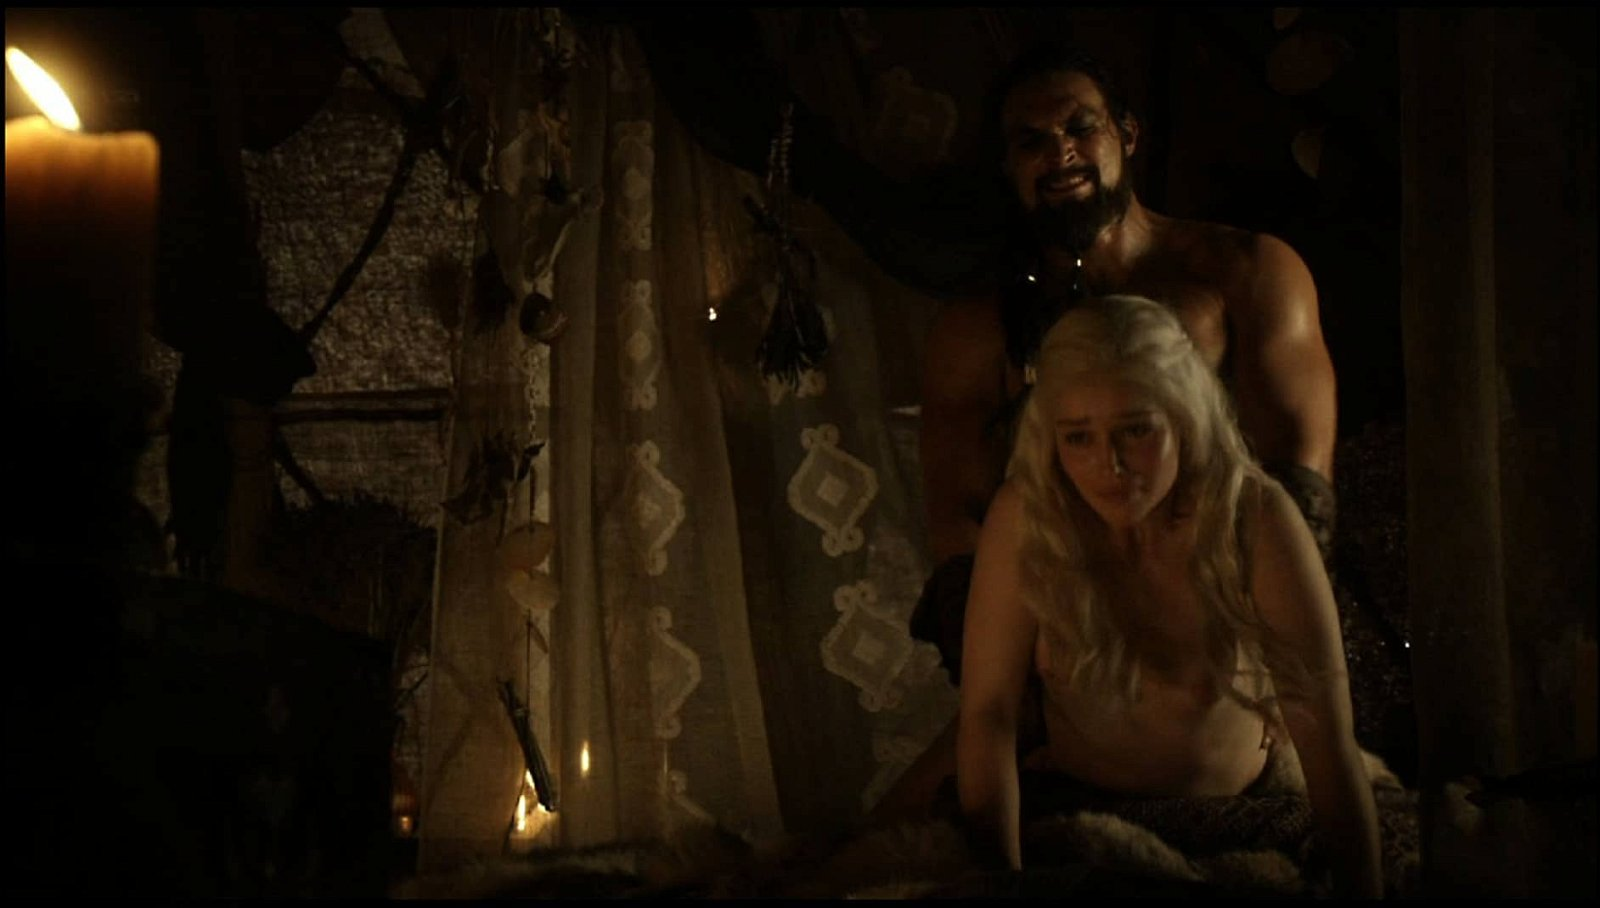 Emilia Clarke getting it from behind topless